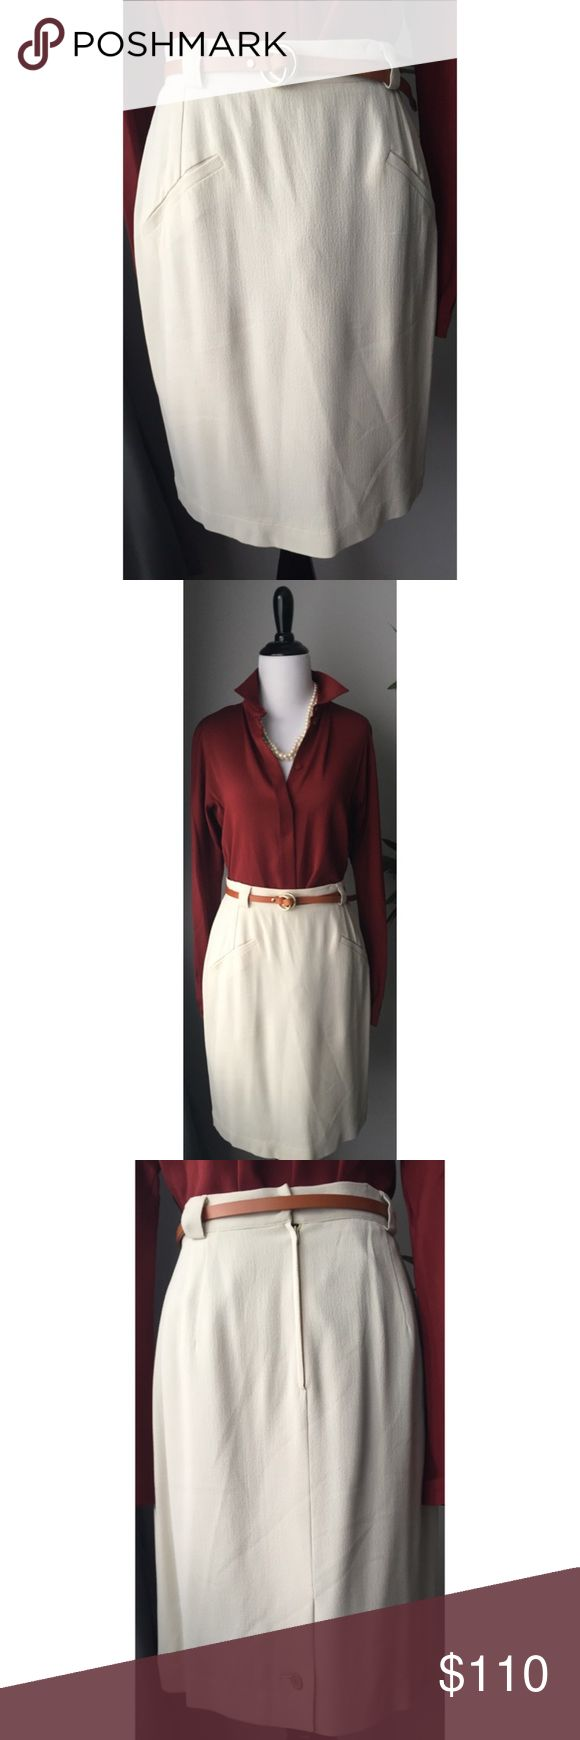 🎉 Flash Sale! Giorgio Armani Cream Crepe Skirt Near new condition. Only worn by a couple of actresses on a tv show (hence the label ironed inside of the skirt in the last picture). Cute button detail at rear vent. Belt sold separately! Giorgio Armani Skirts